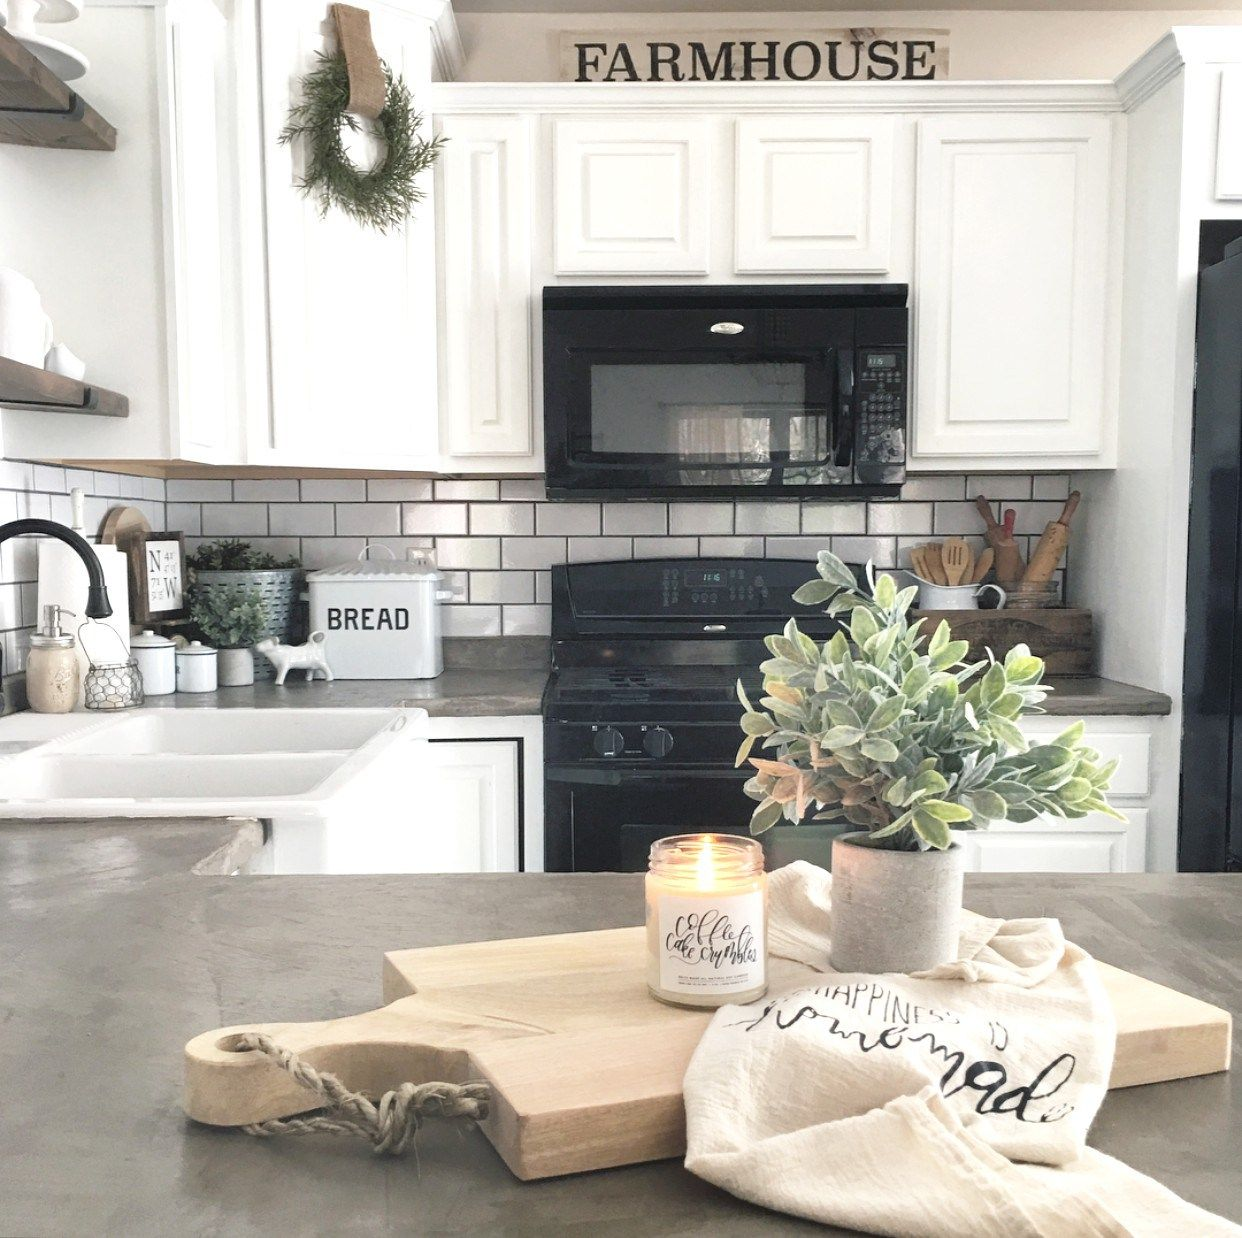 White Kitchen With Black Appliances farmhouse kitchen | the little white farmhouse blog | pinterest